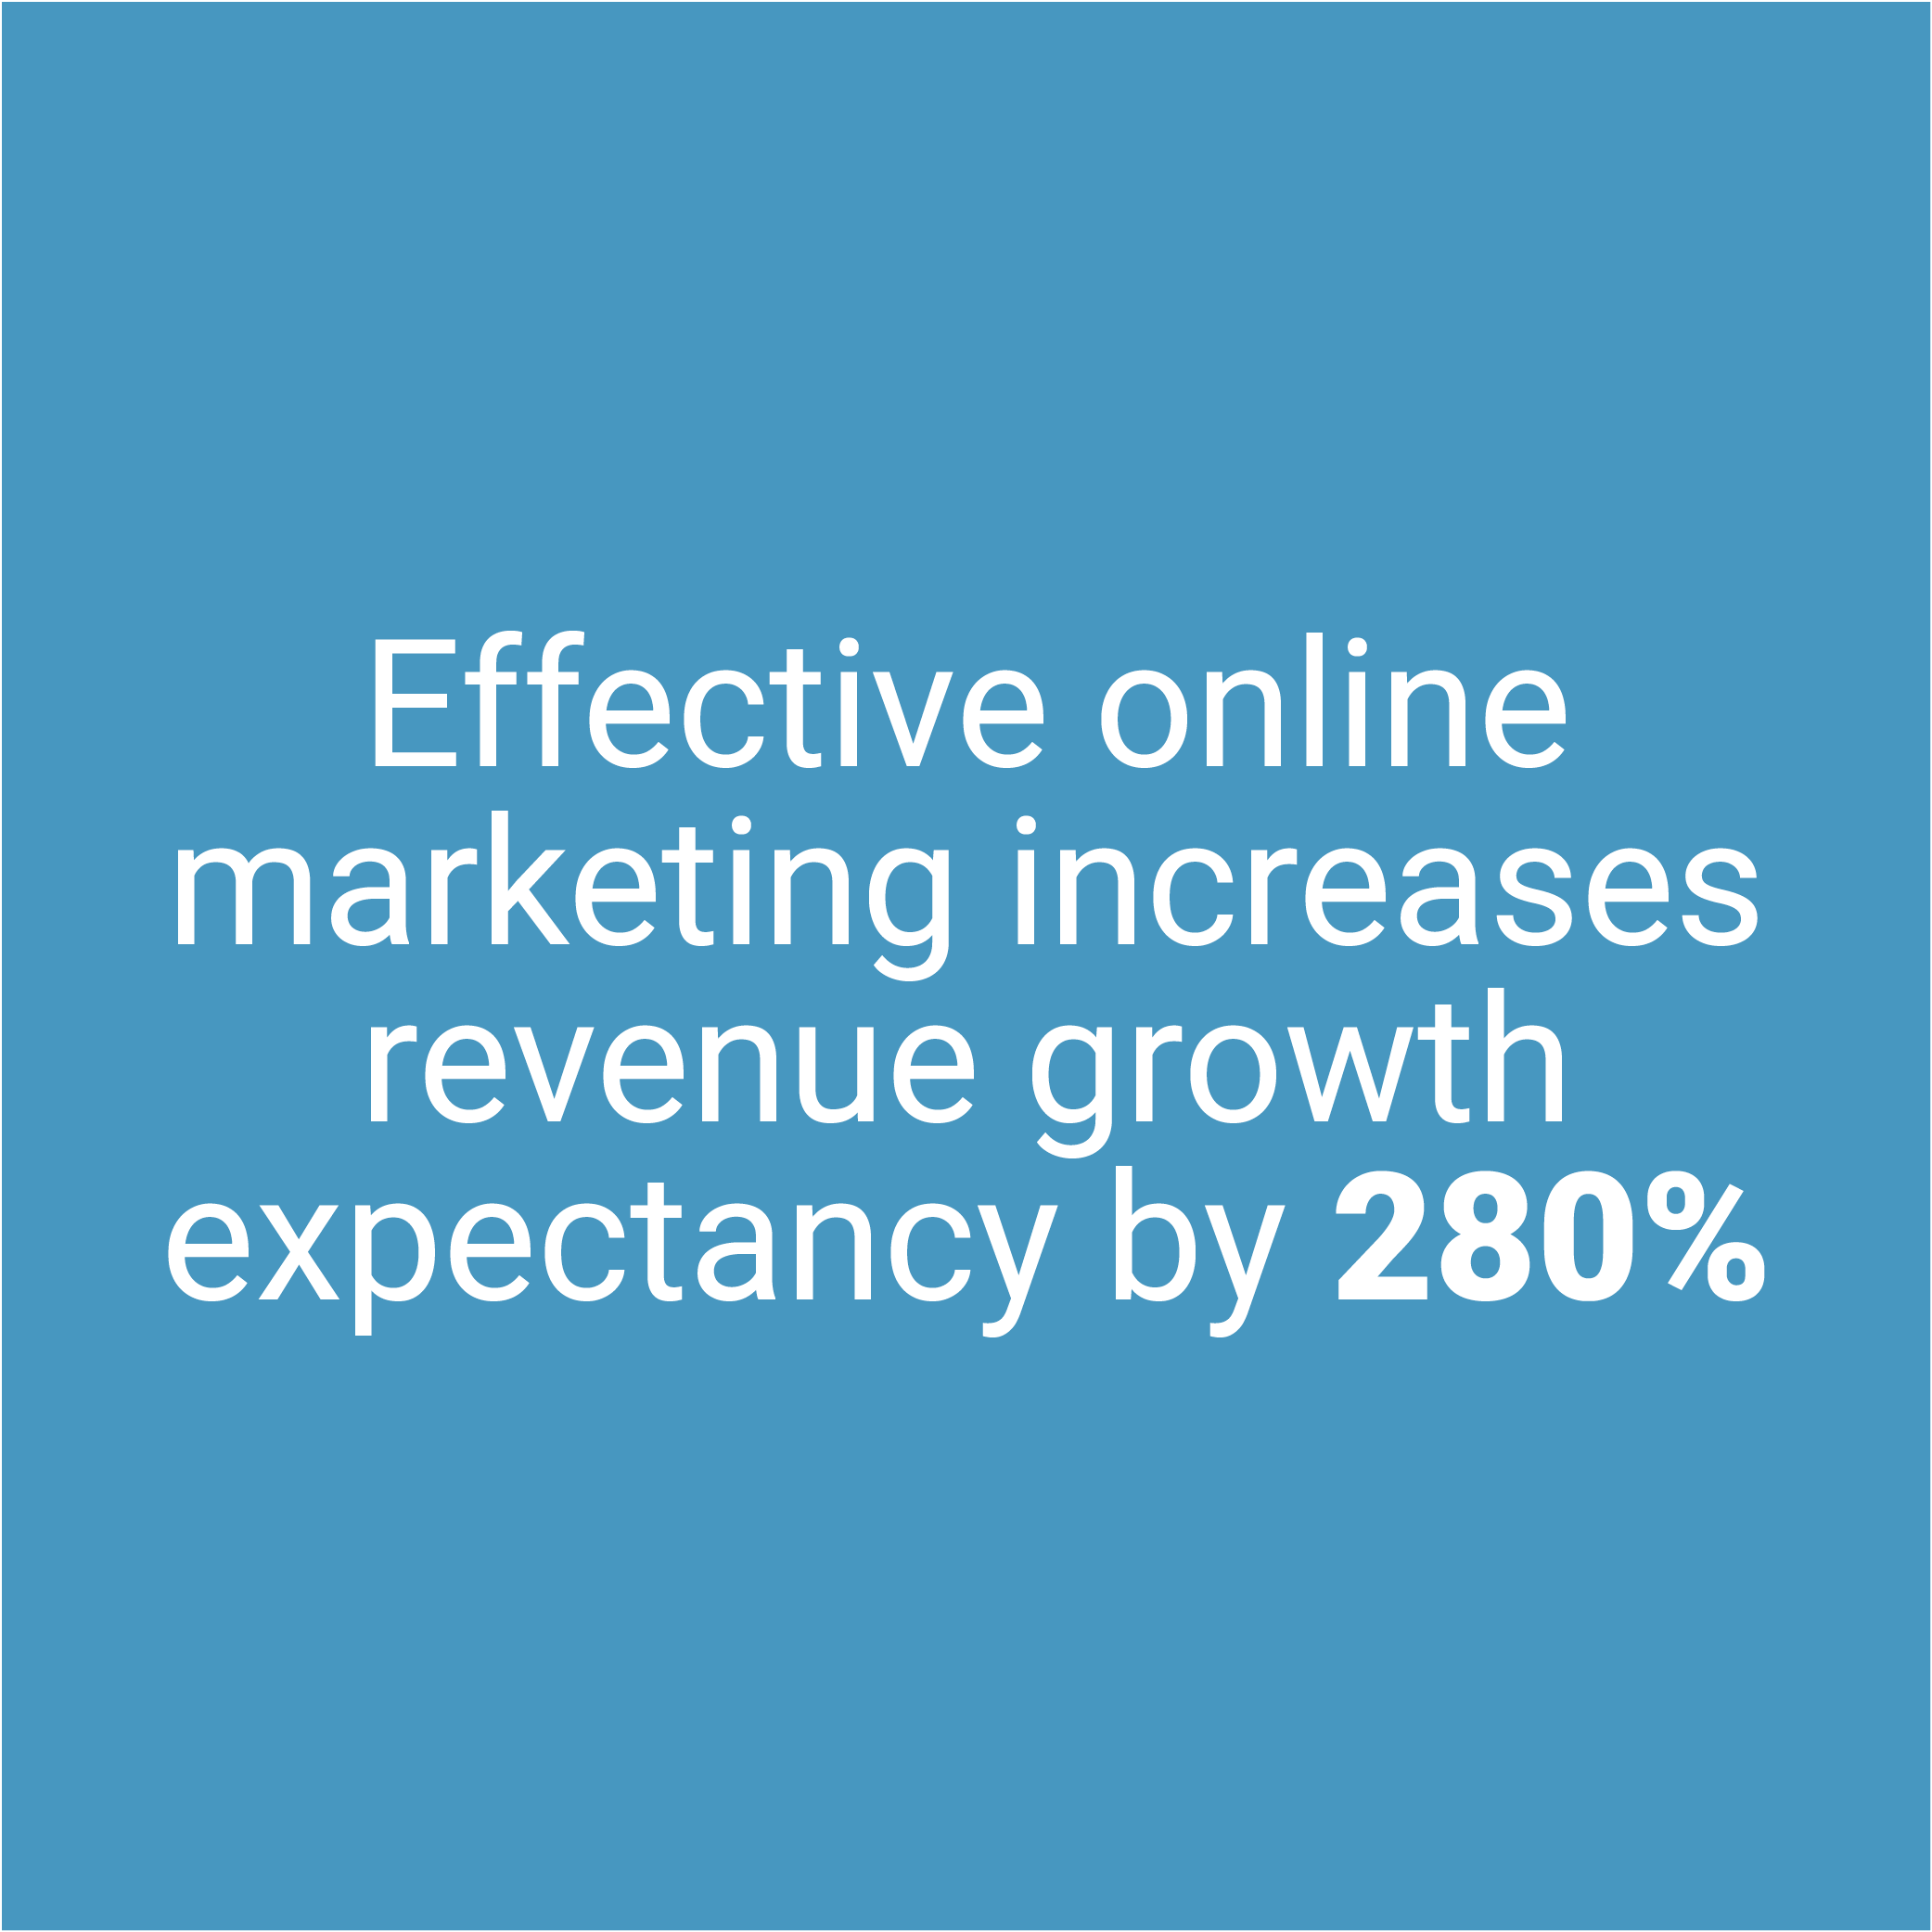 Effective B2B digital marketing can increase growth expectancy by 280%